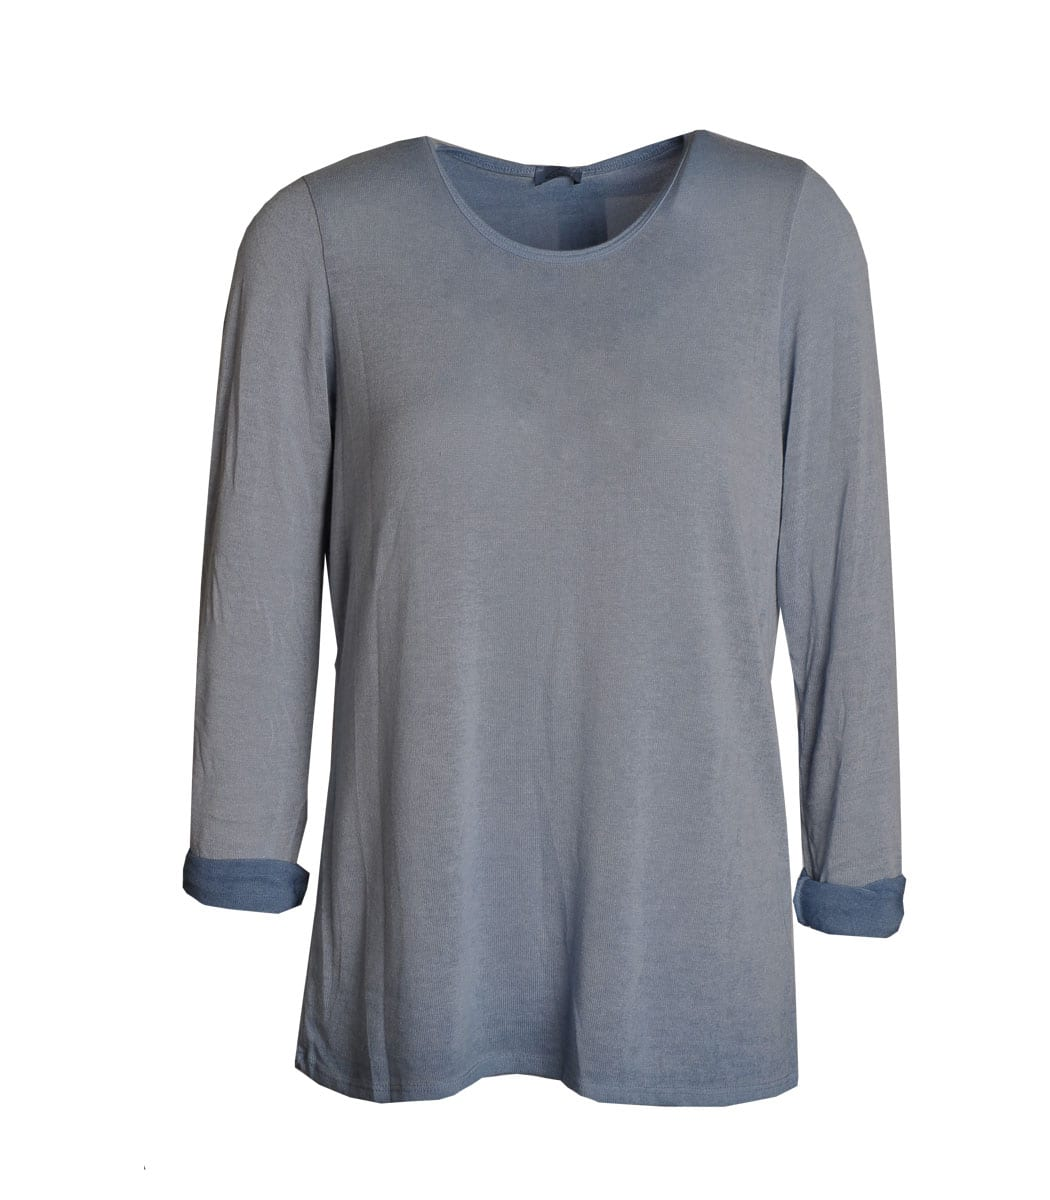 Washed knit top